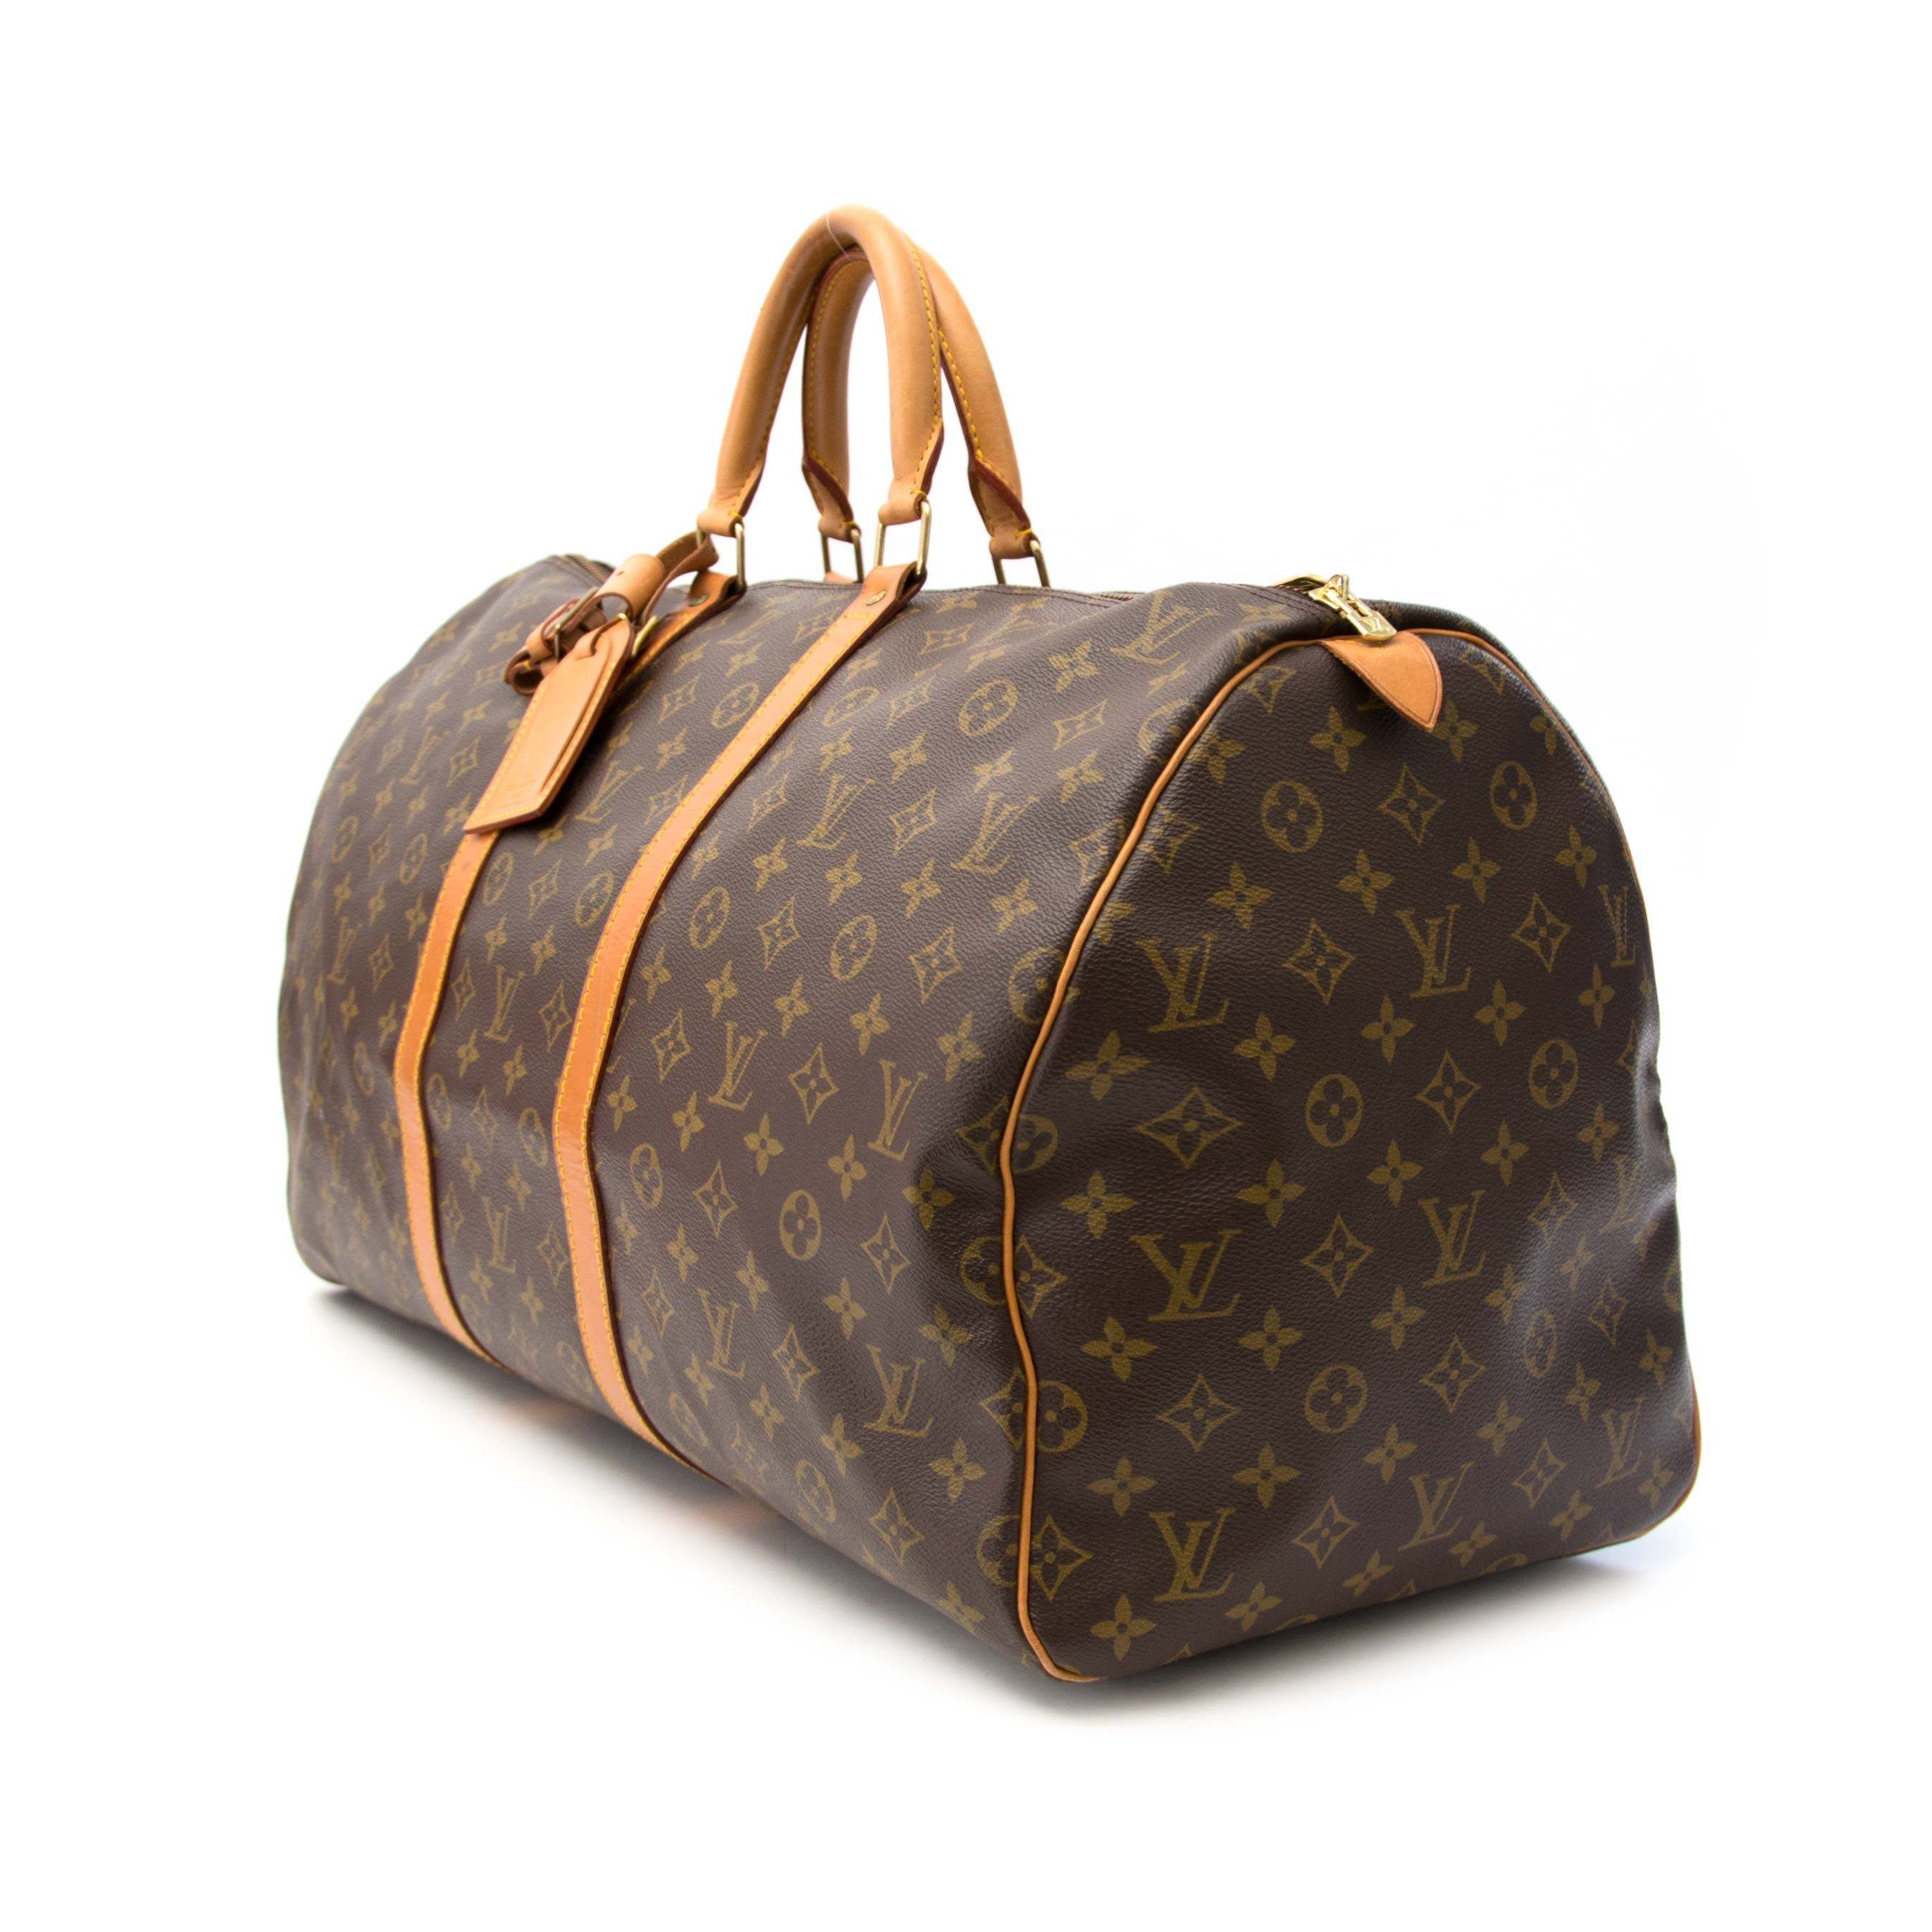 d687aec376f3 Secondhand Louis Vuitton Keepall 55 online for sale Buy safe and online secondhand  Louis Vuitton Keepall 55